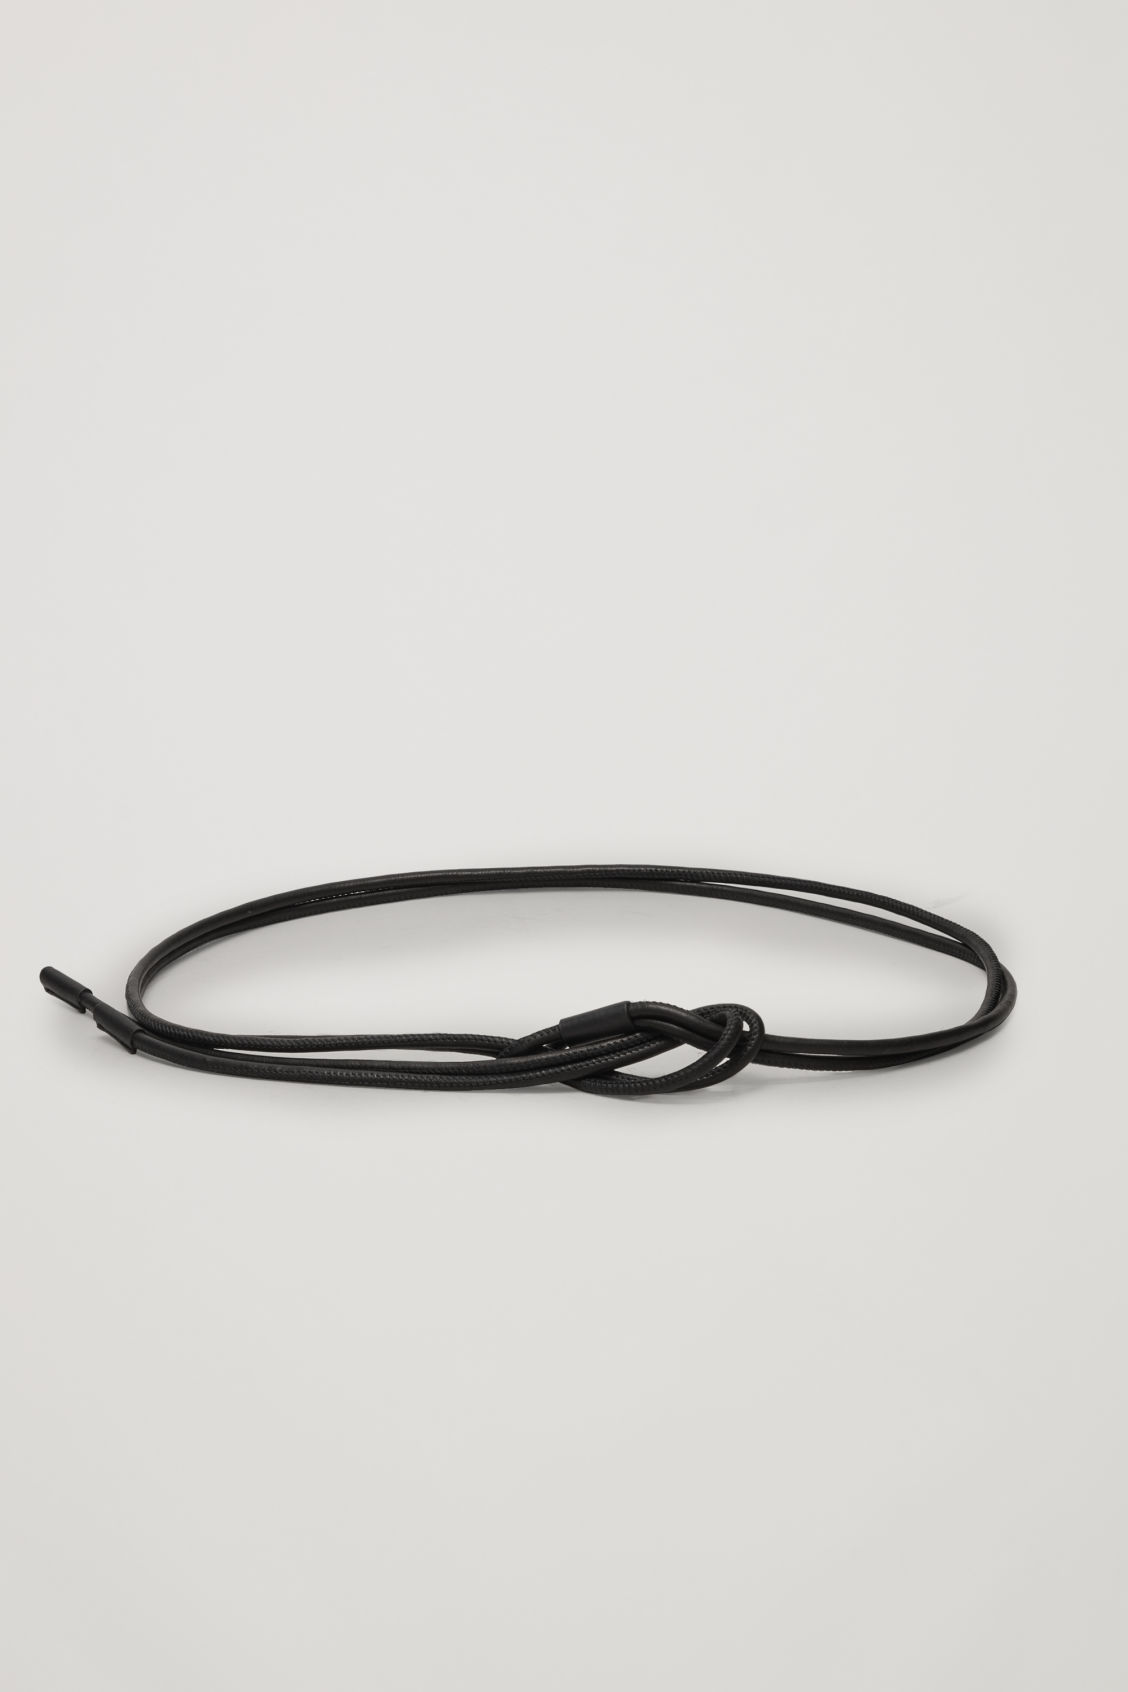 7150 Loopes Fit Over Sunglass Wear Over Shades: LEATHER ROPE BELT WITH LOOP